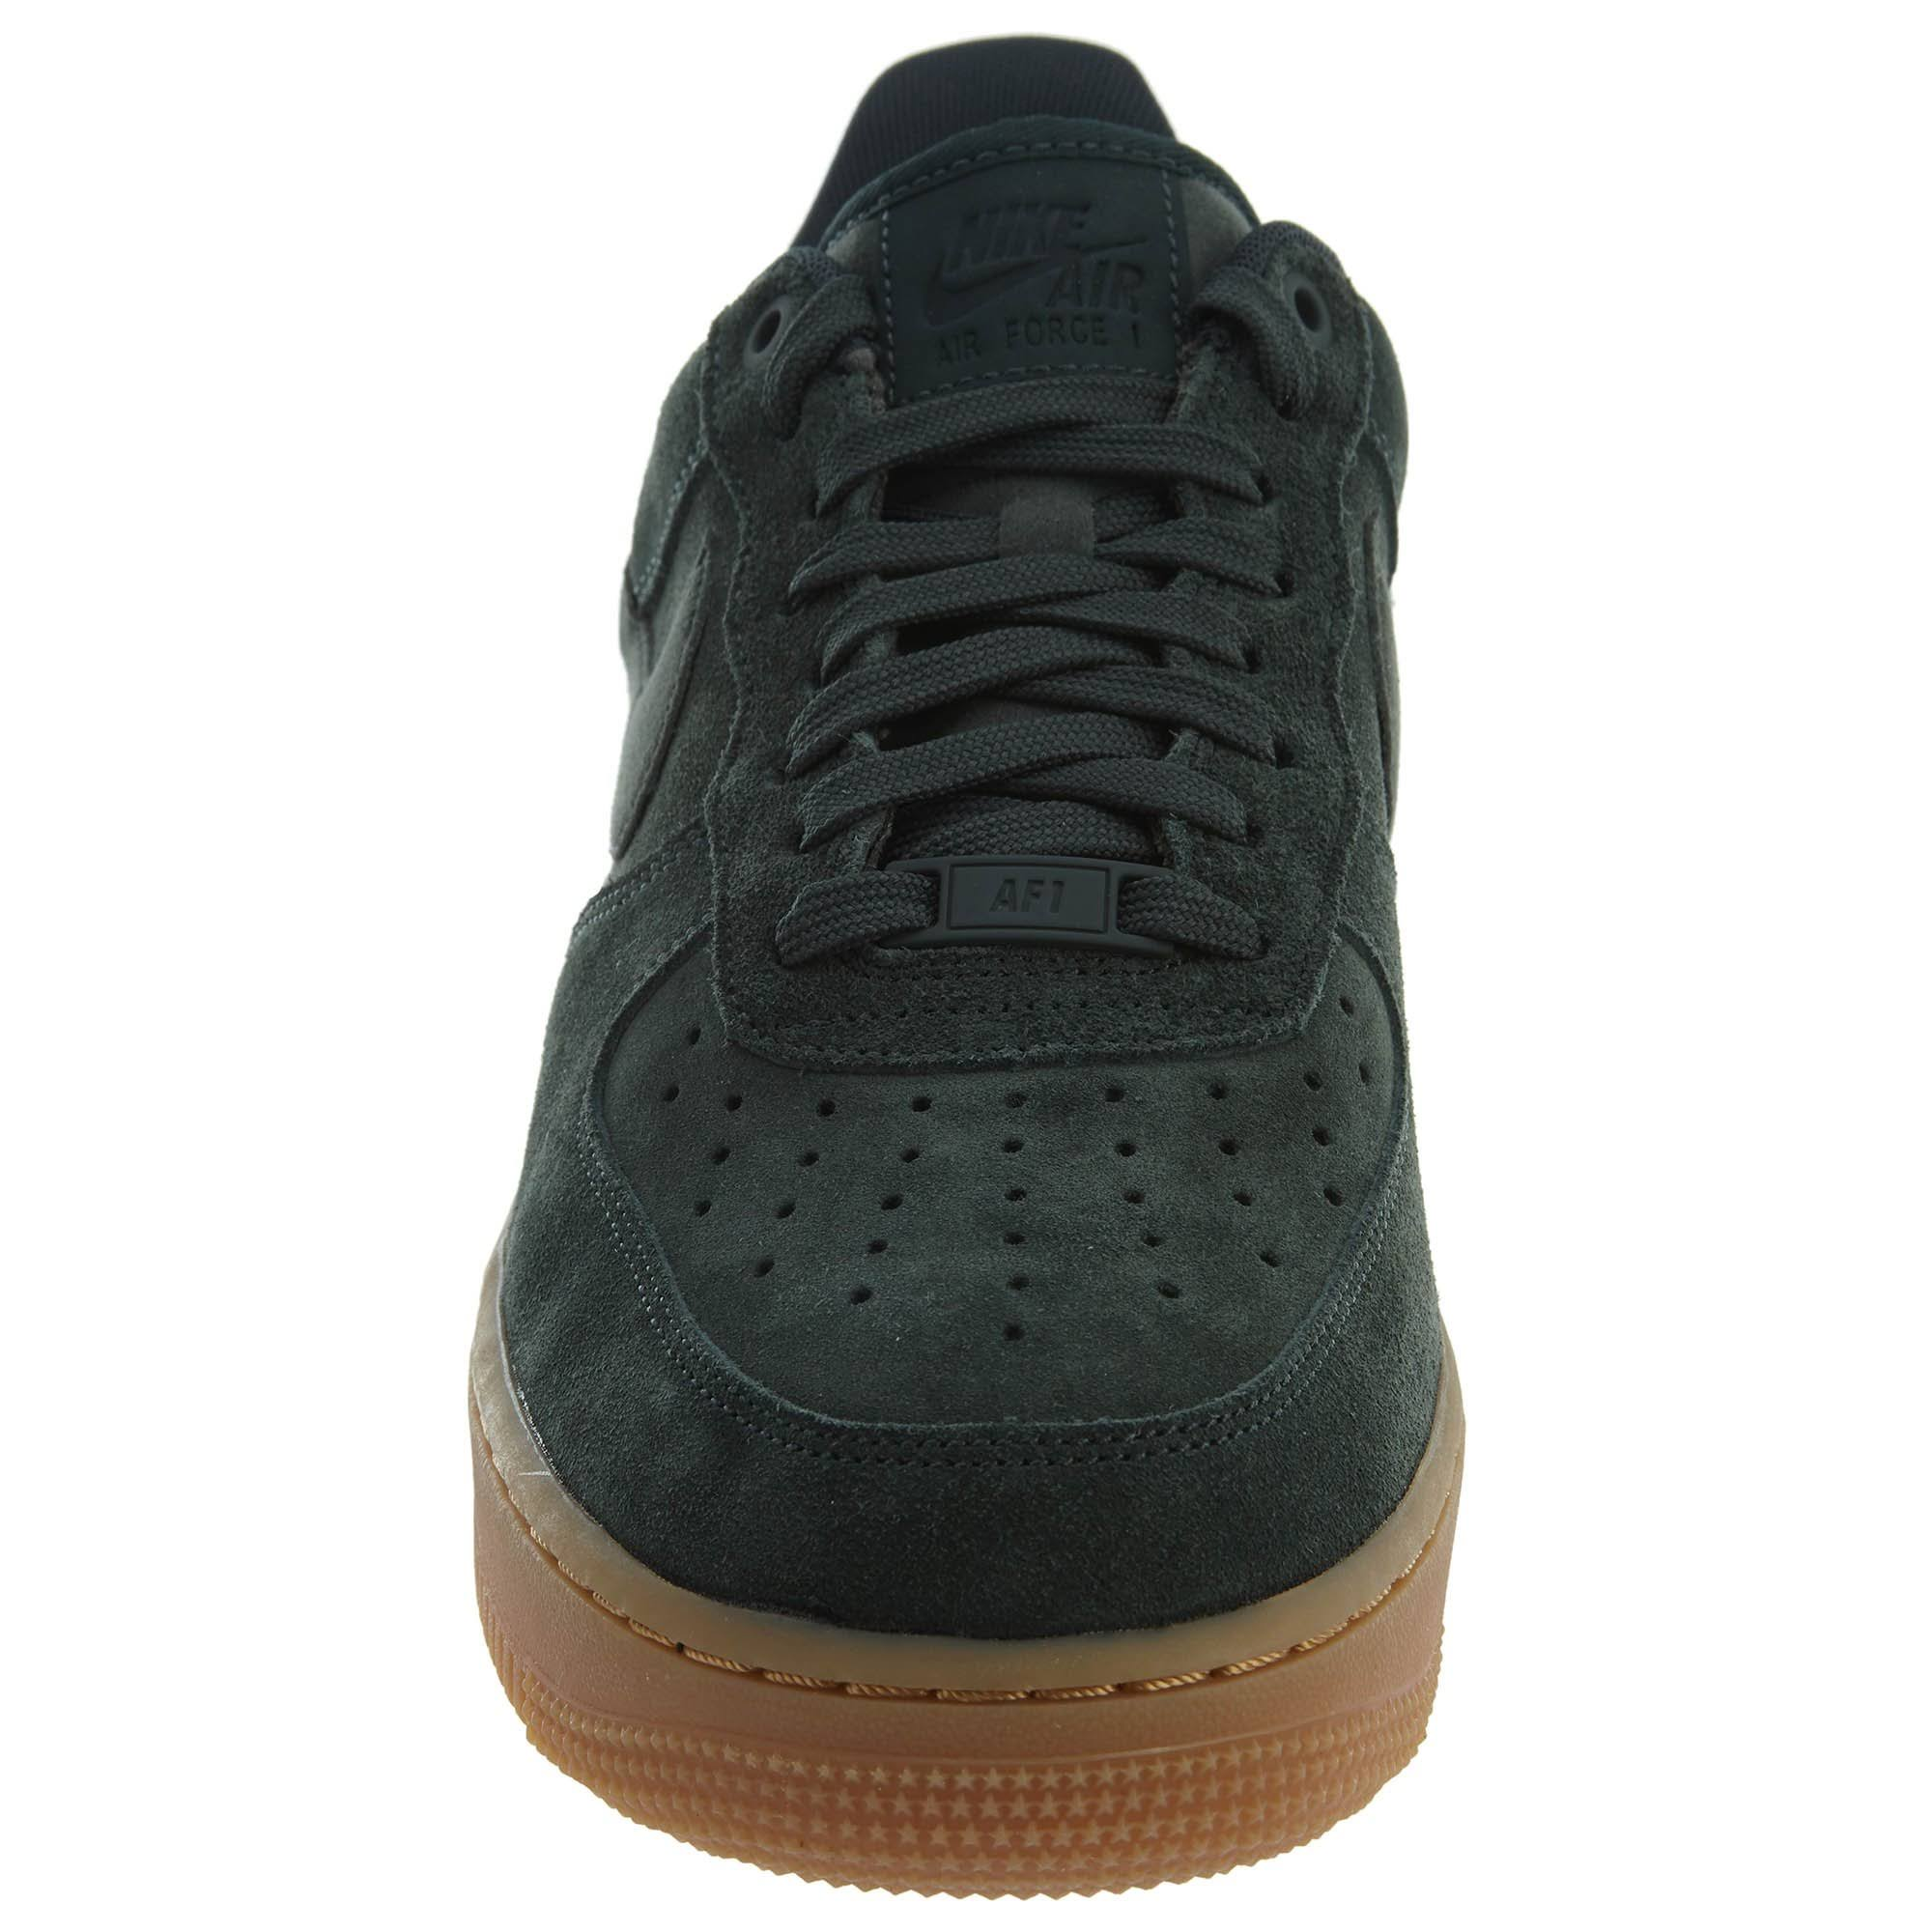 Lv8 1 Force Suede Green Nike '07 Outdoor Air zqT7vxpHB